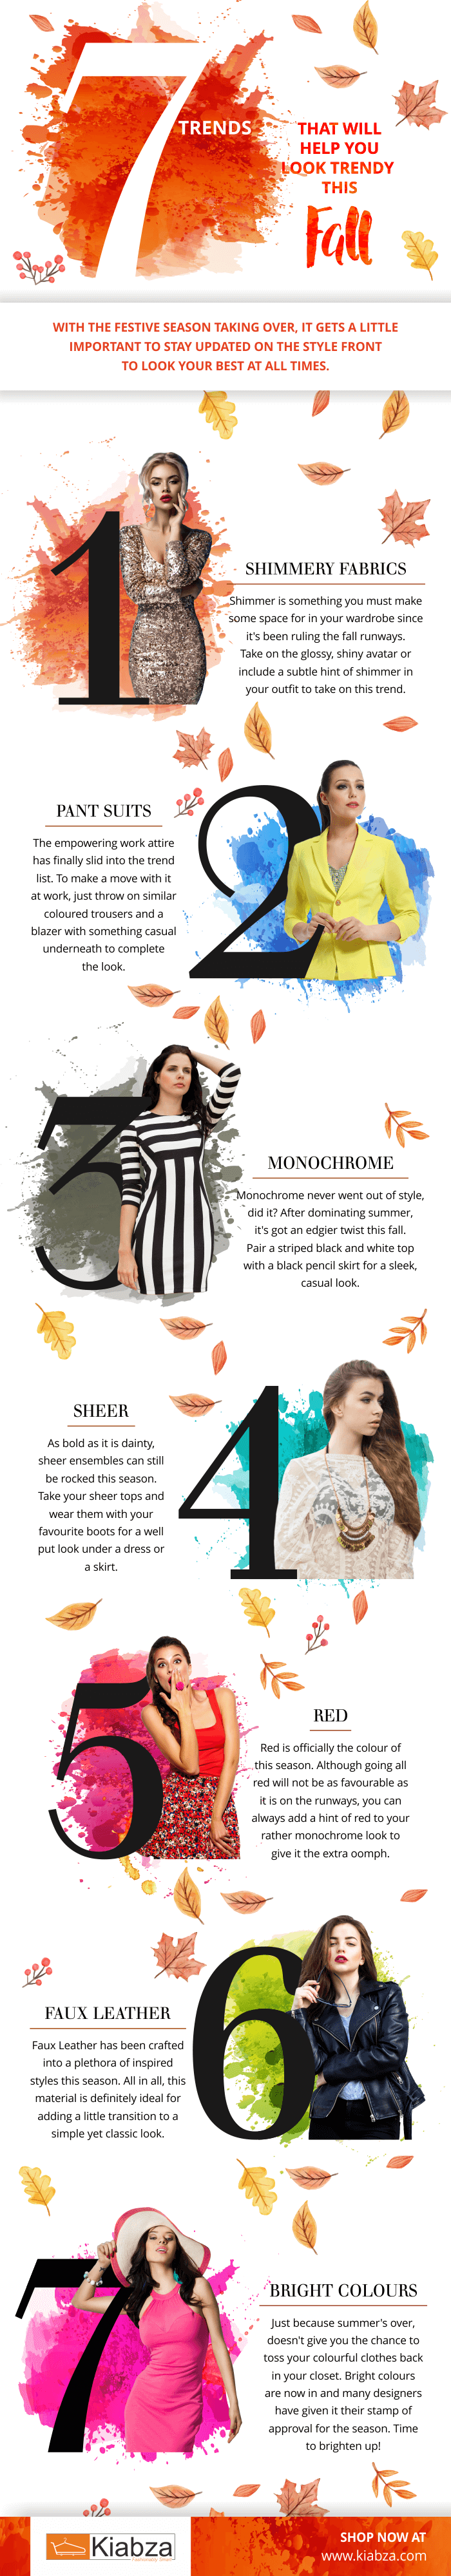 7-Trends-to-look-trendy-this-fall-infographic-plaza